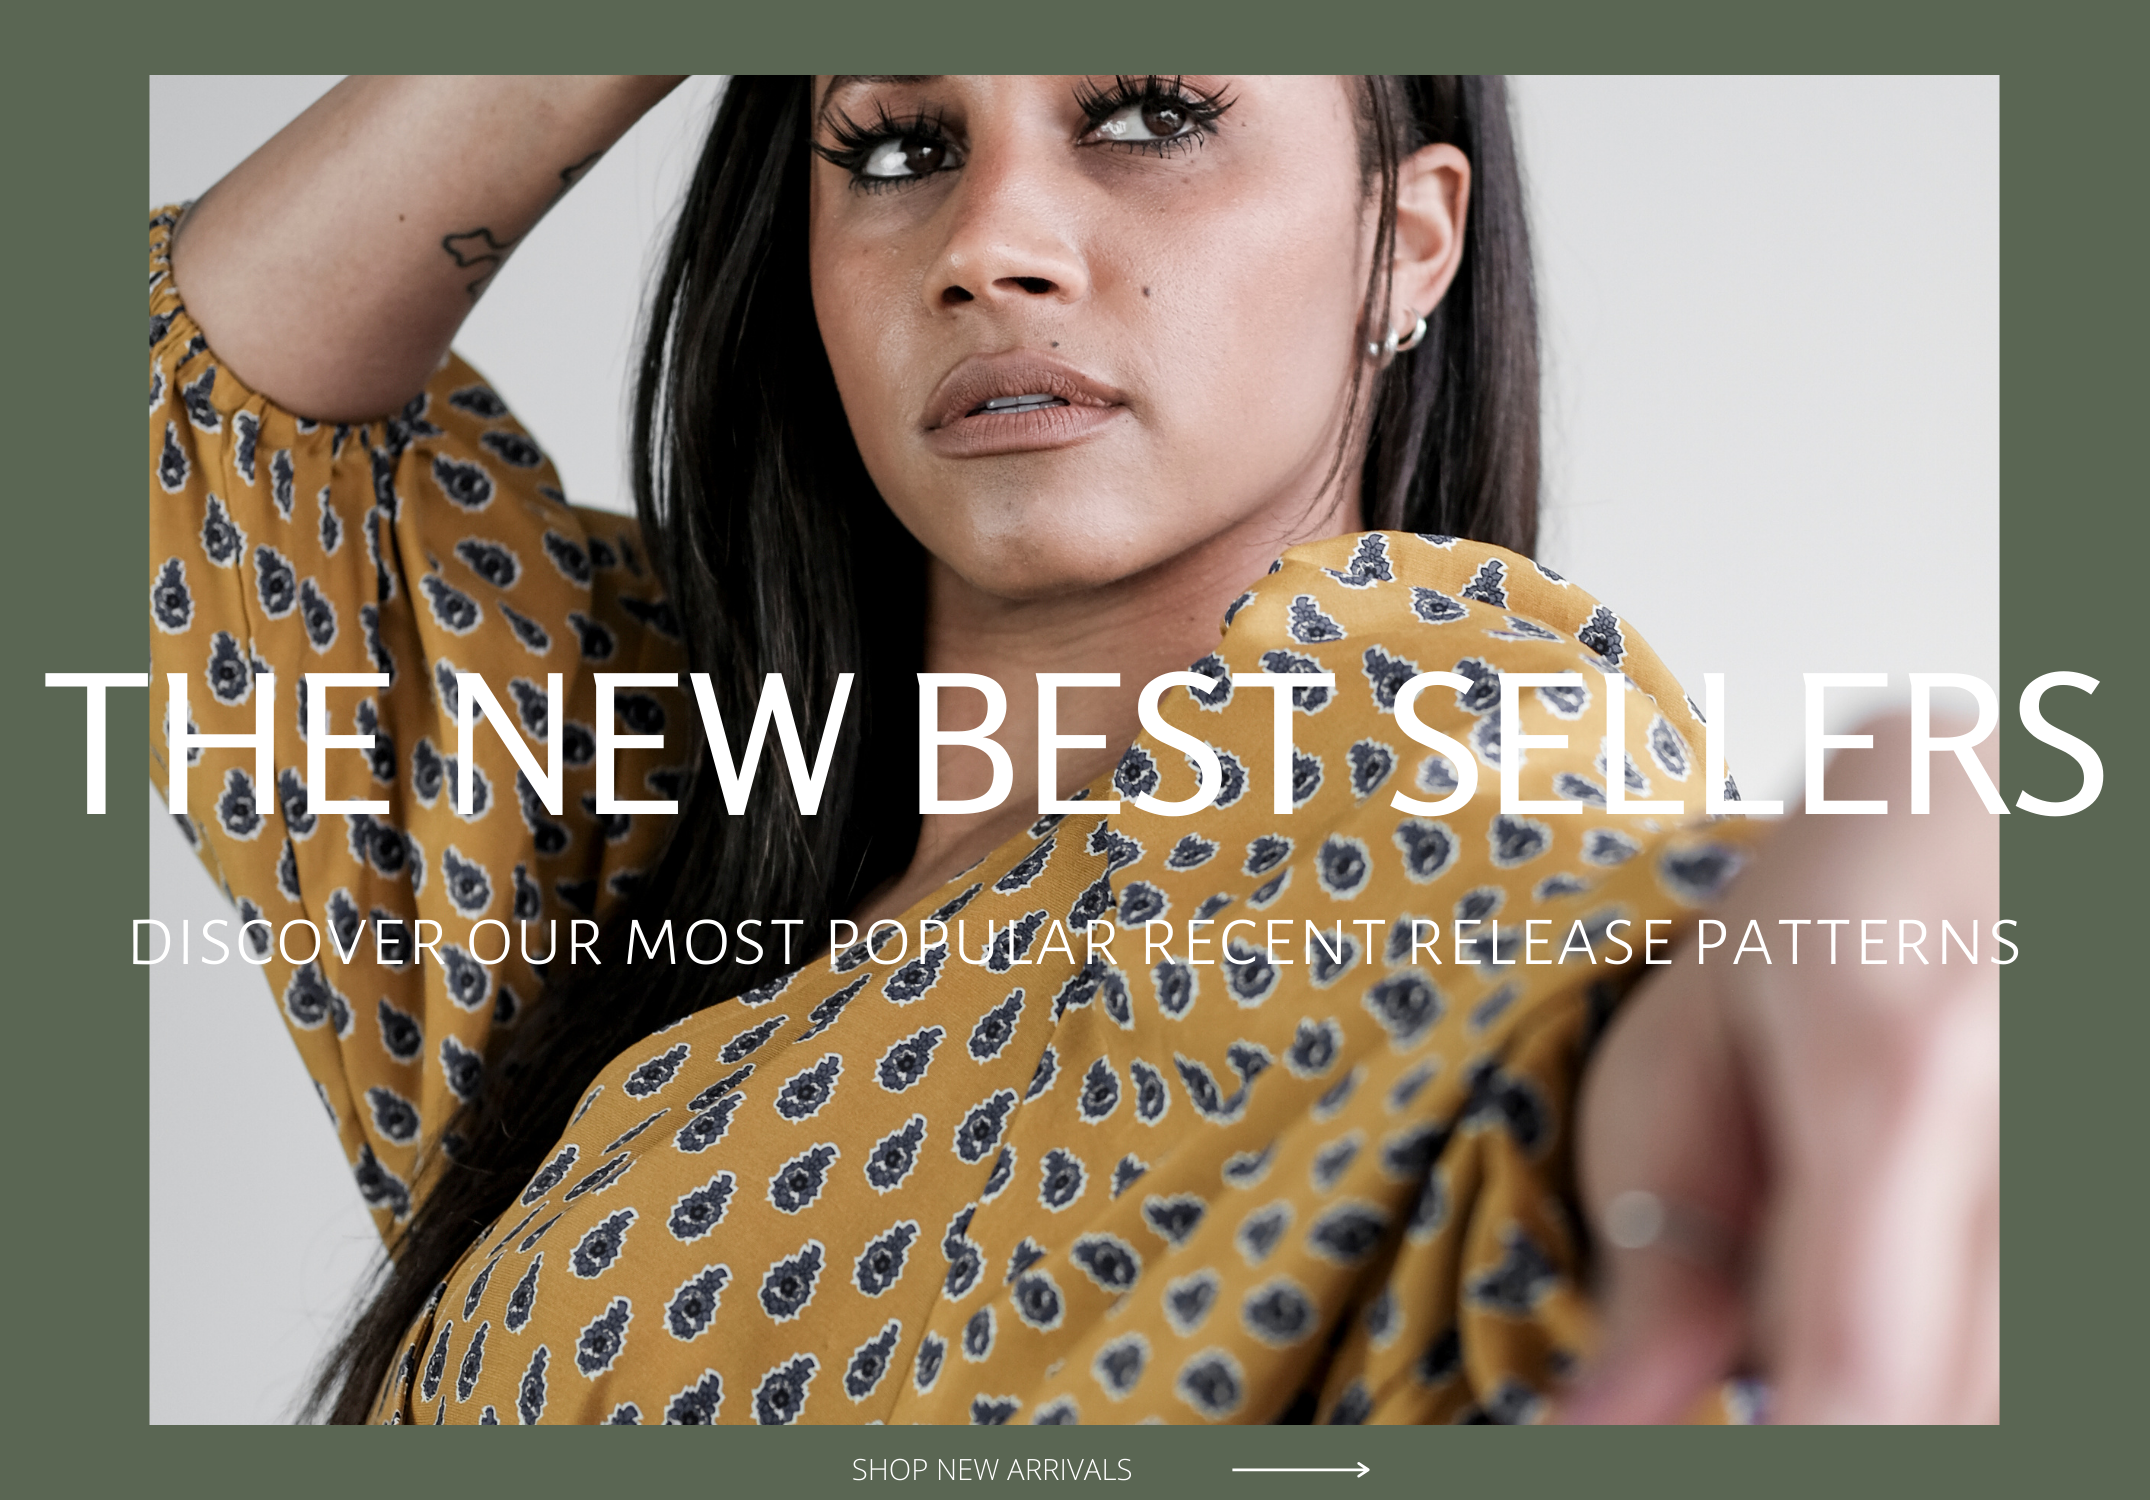 The new best sellers- discover our most popular new releases